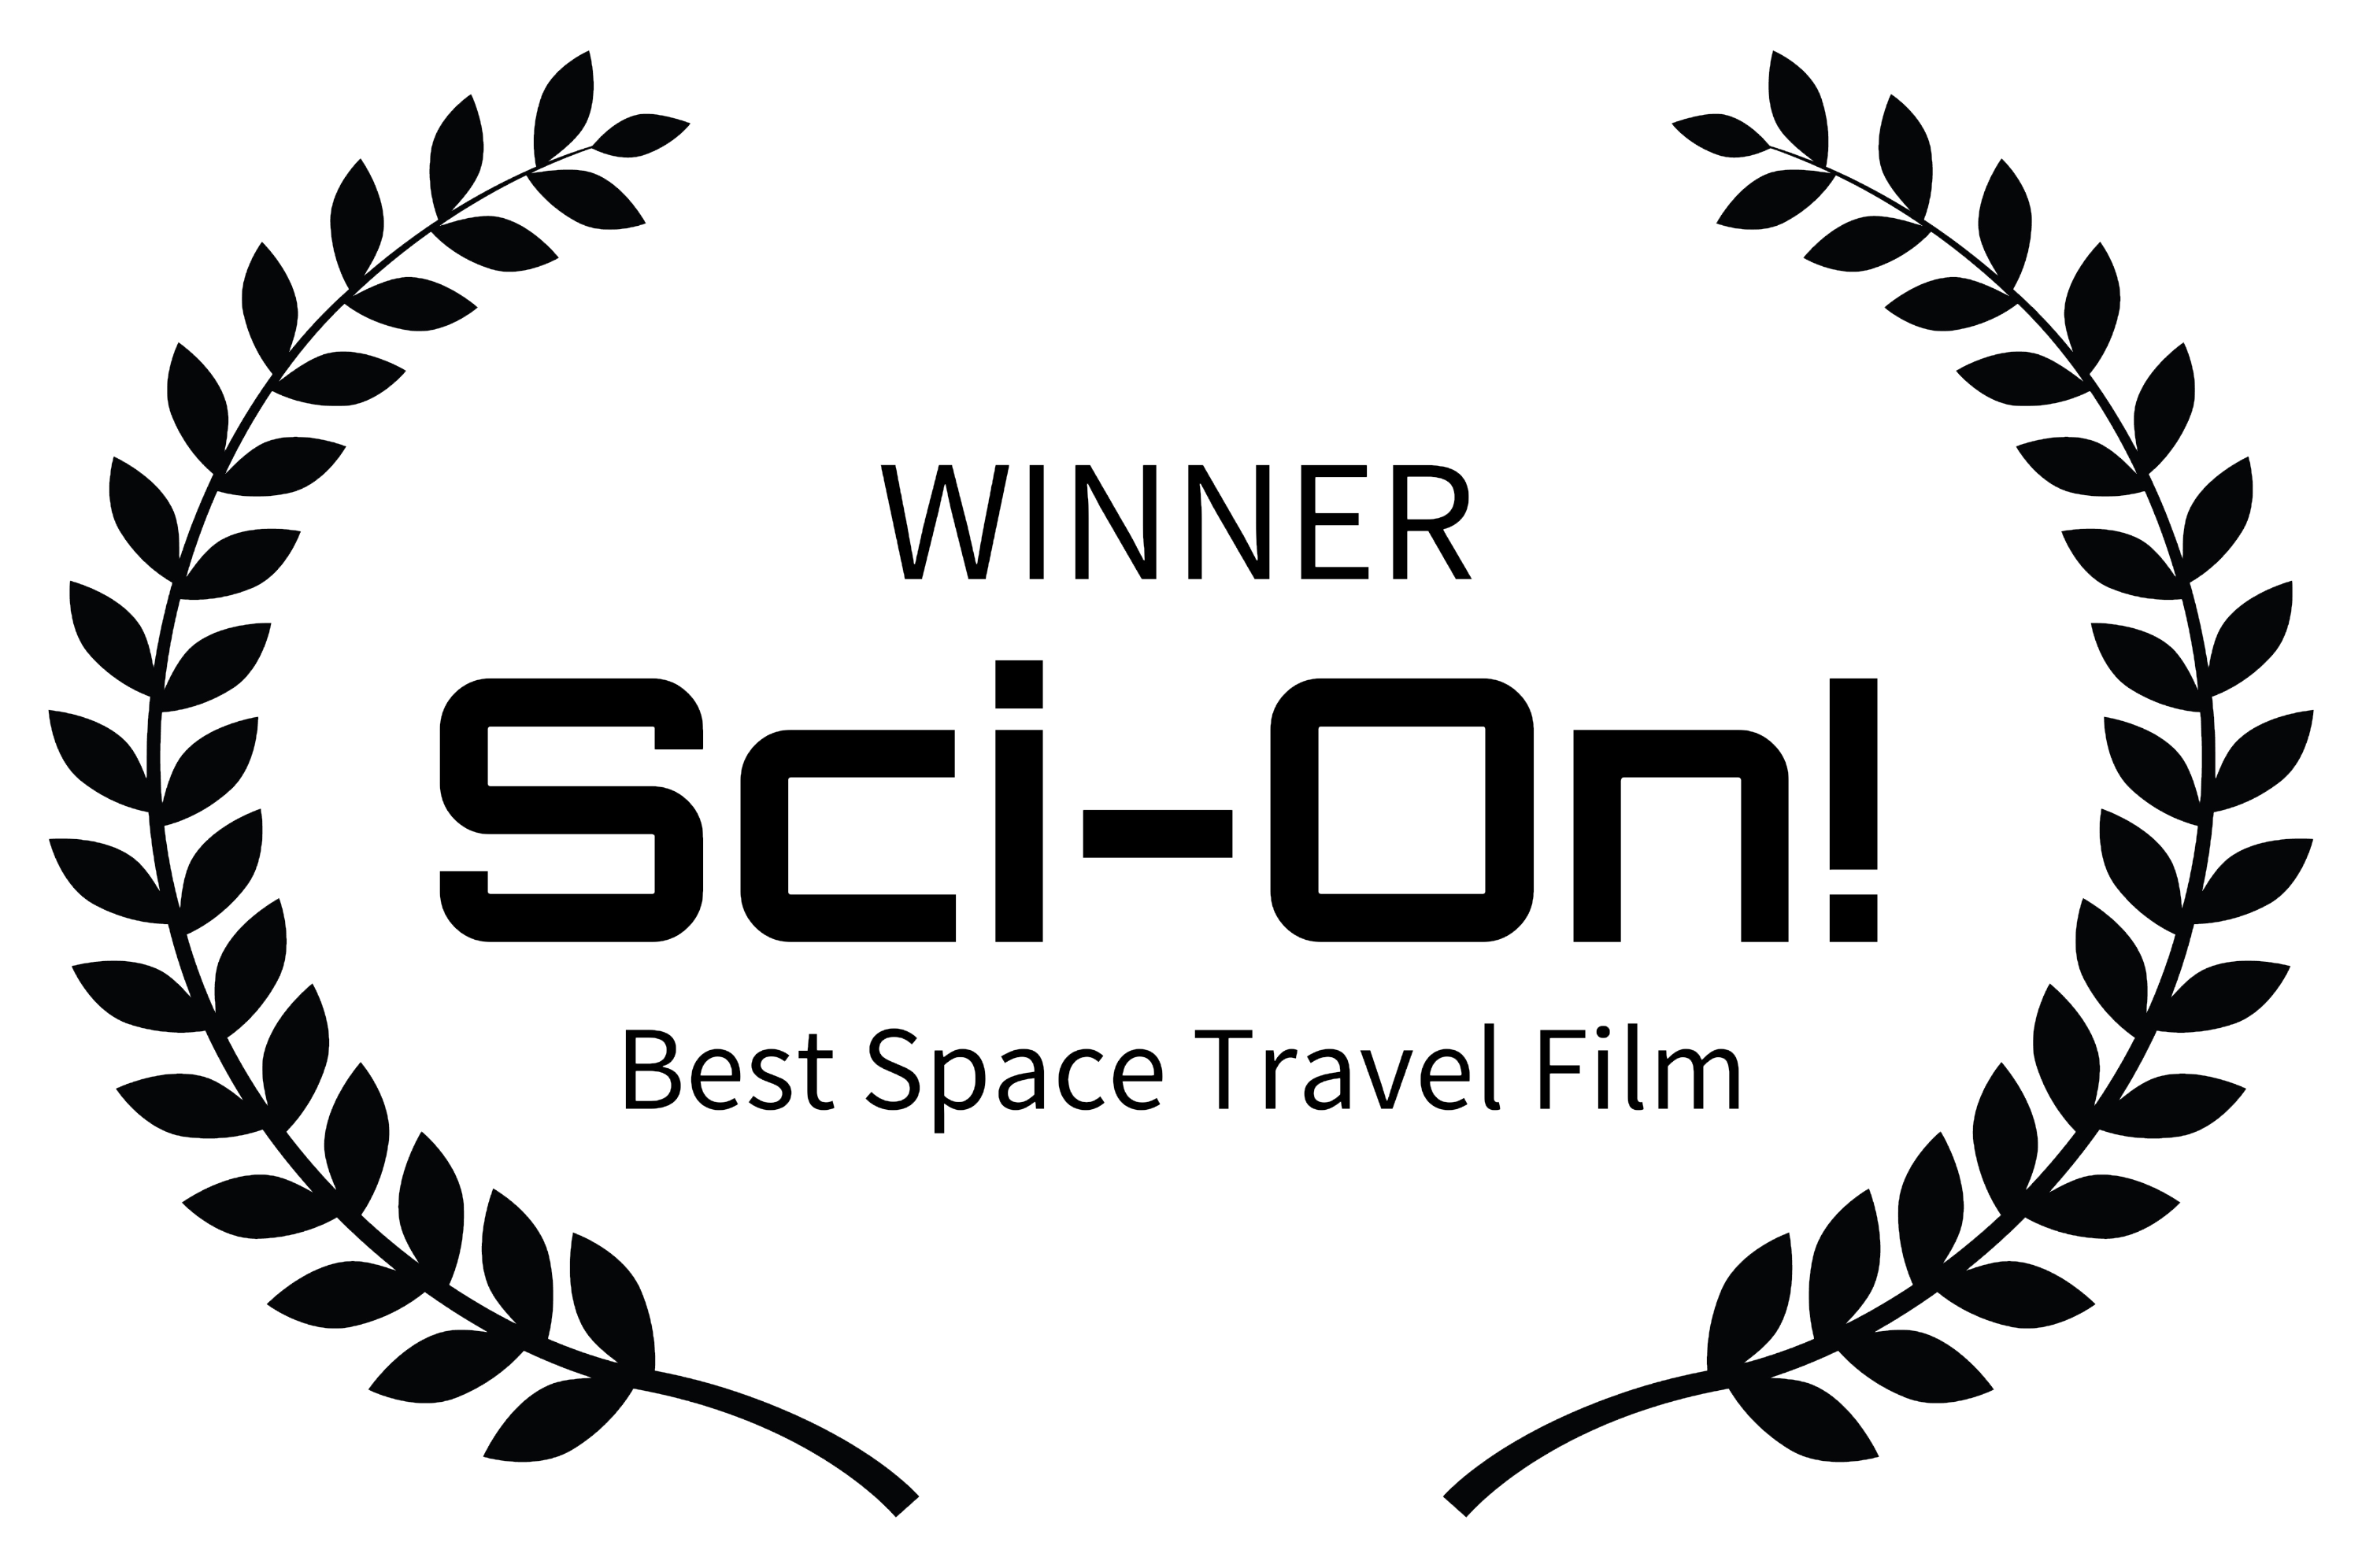 WINNER-Sci-On-BestSpaceTravelFilm_edited